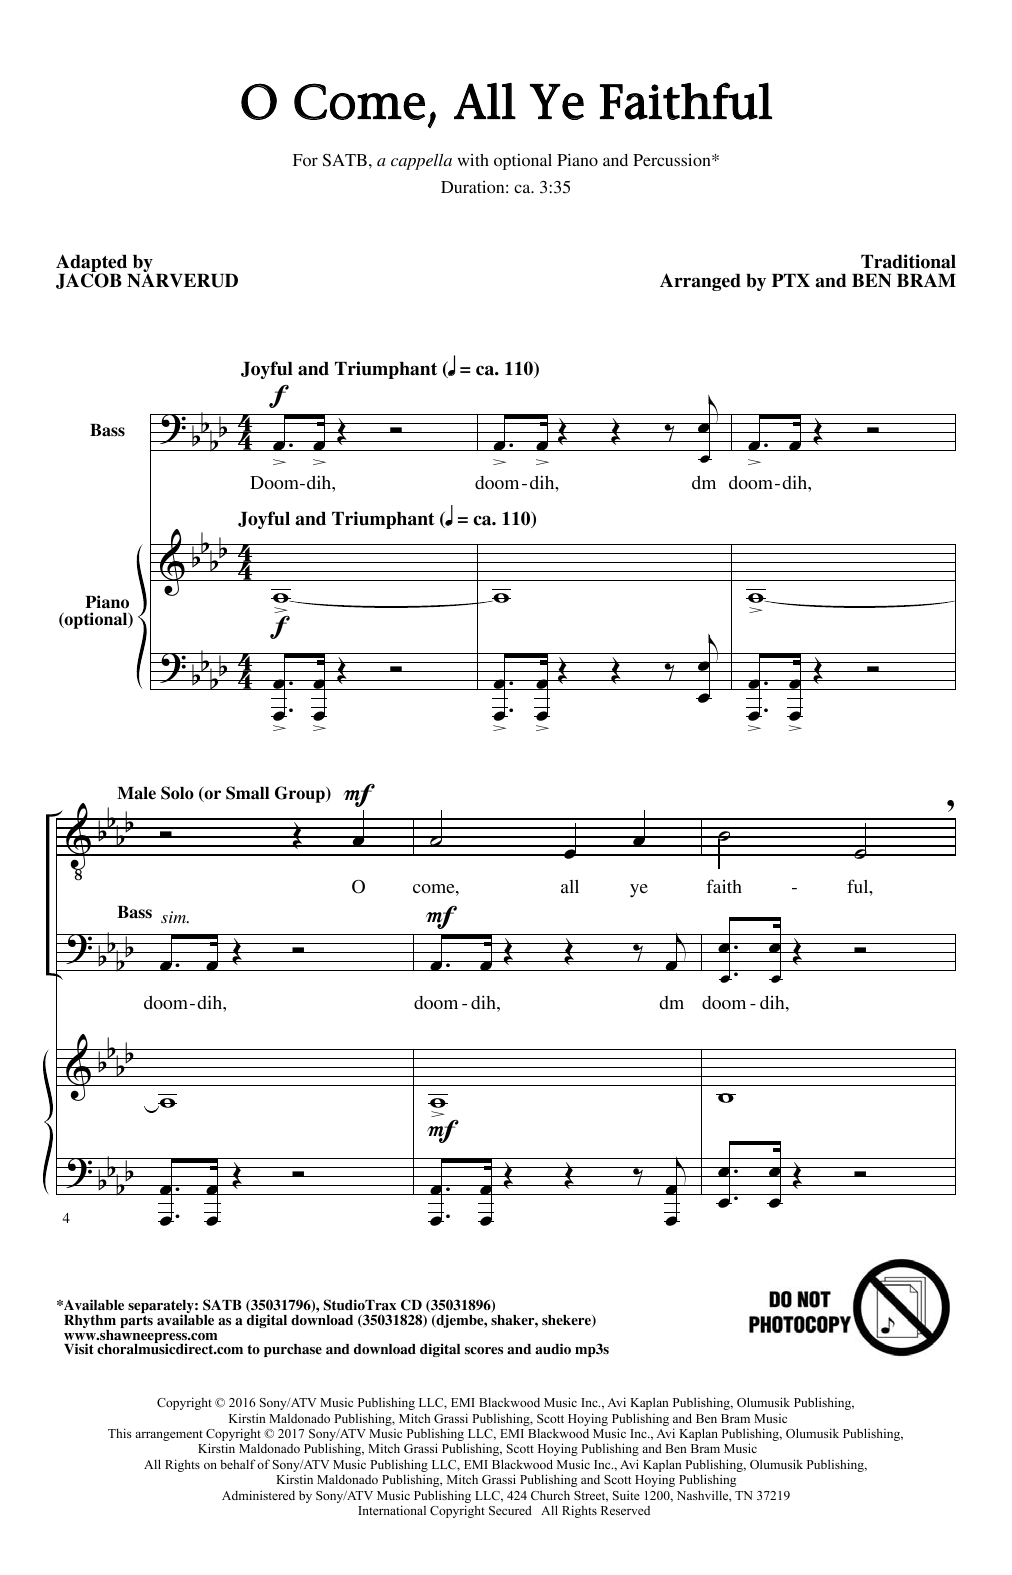 O Come, All Ye Faithful (arr. Jacob Narverud) (SATB Choir)